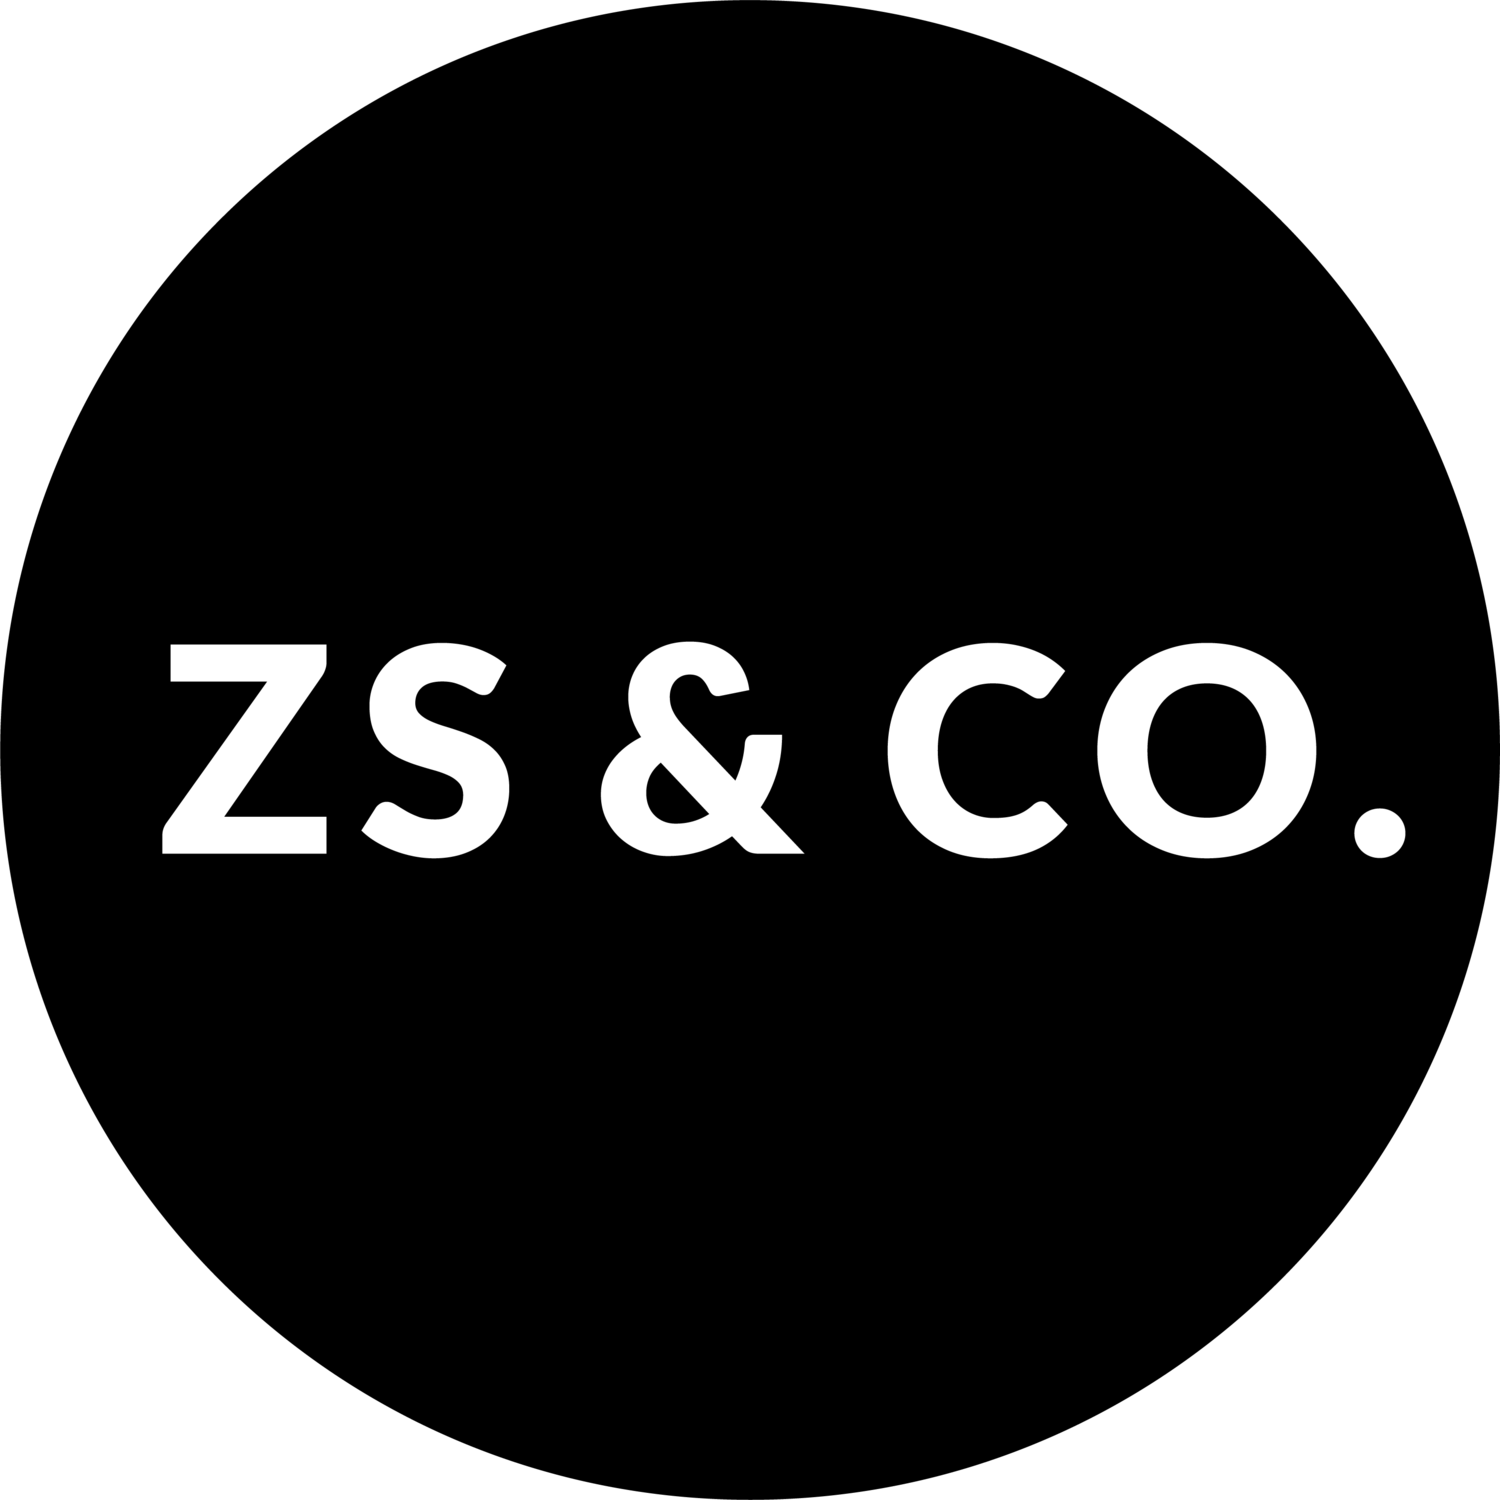 Zuniga Studio & Co.